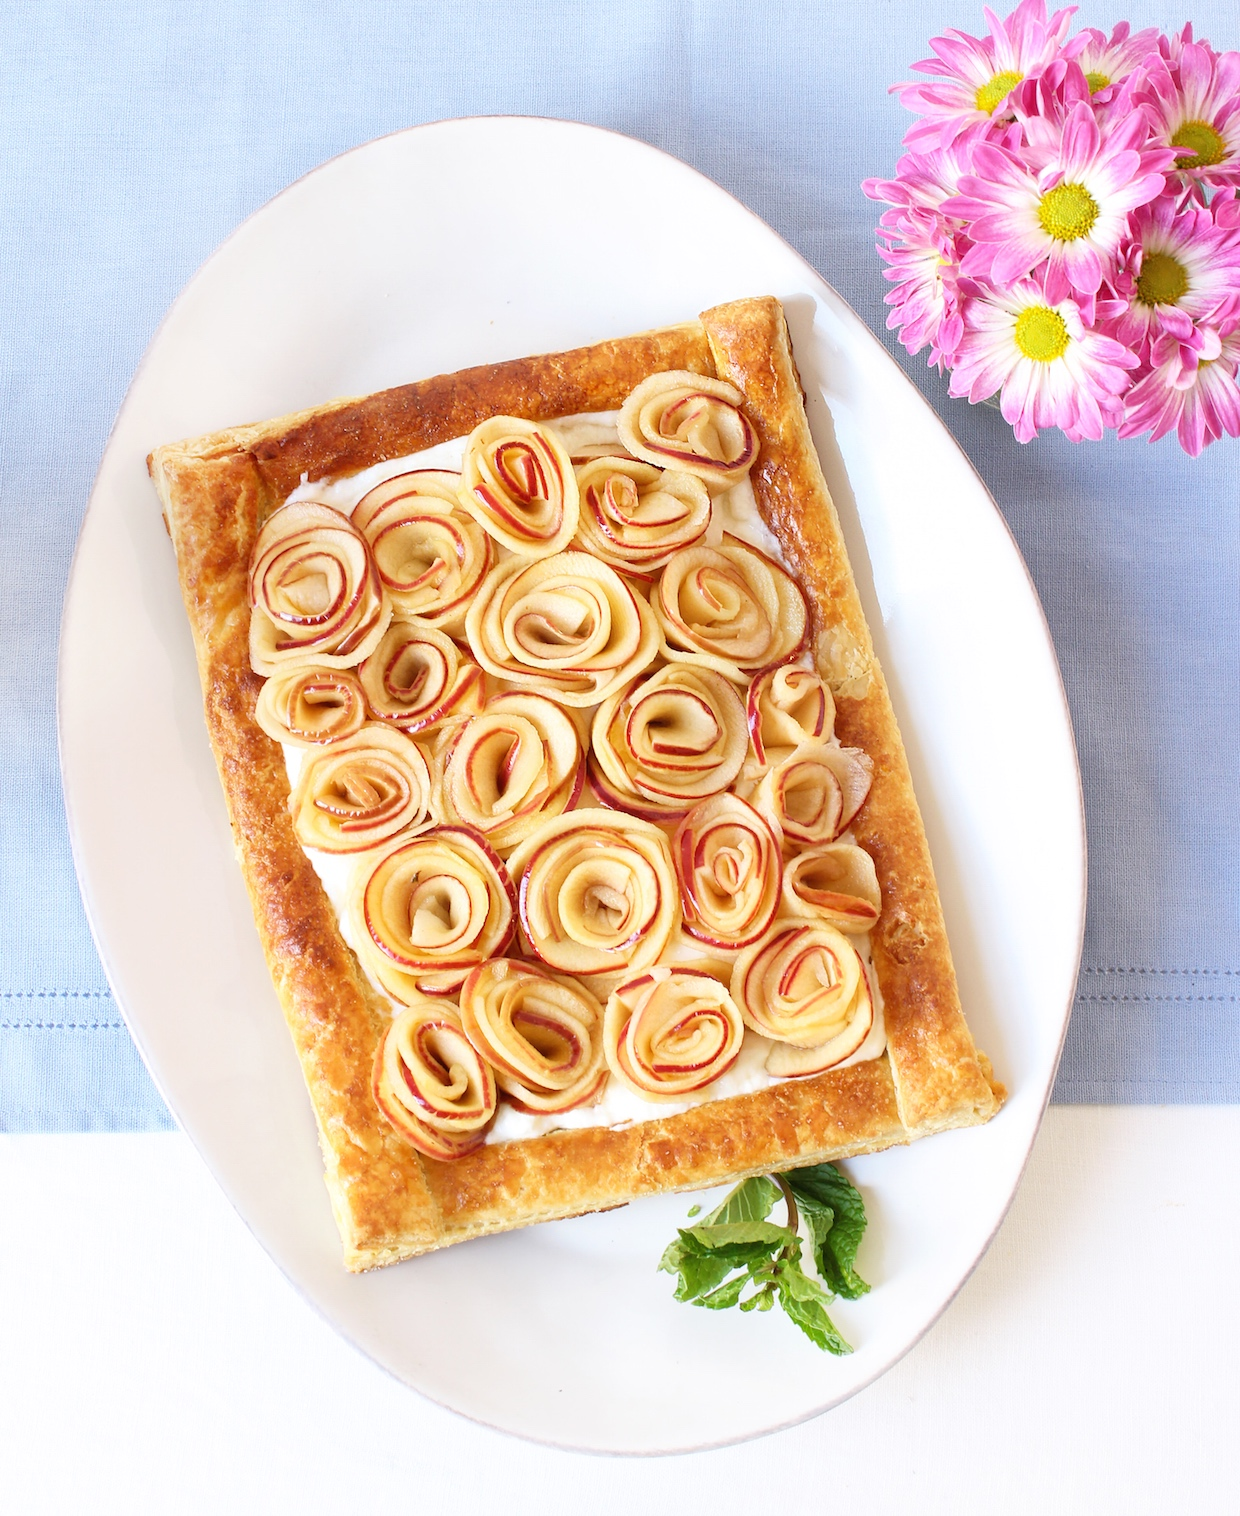 buttermilk-cream-tart-with-apple-roses-martha-stewart-recipe